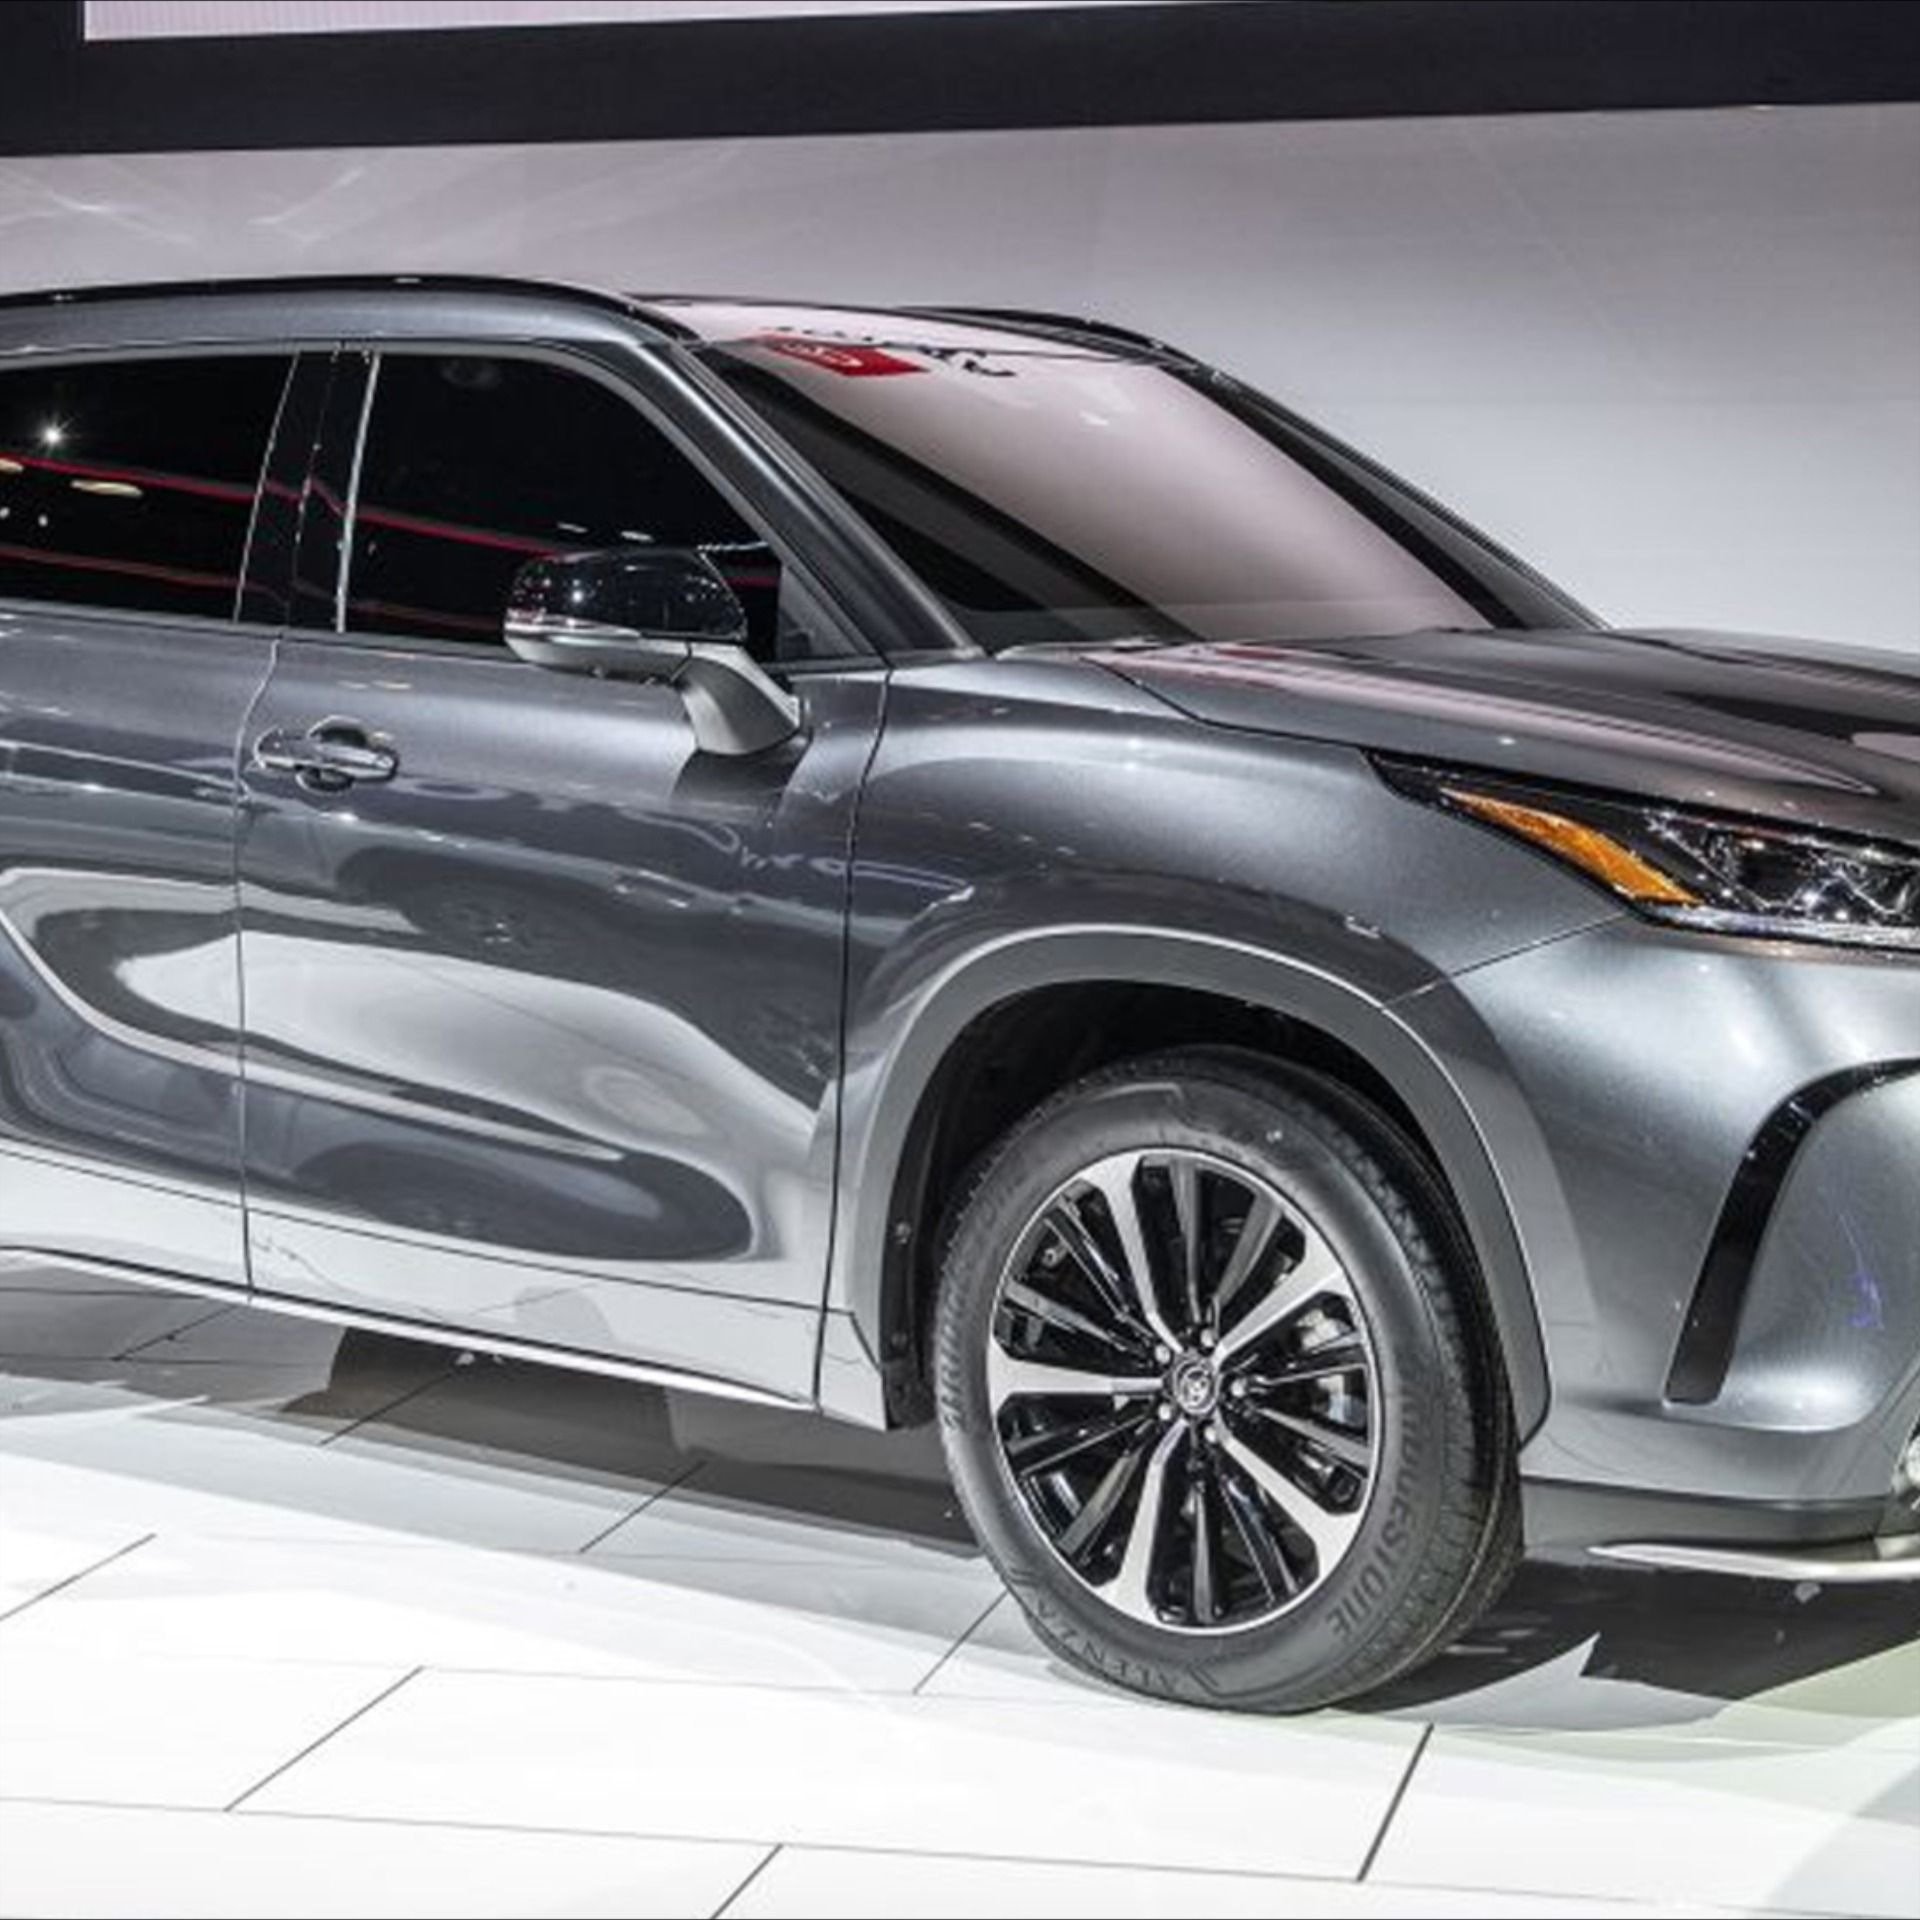 2021 Toyota Highlander At The Chicago Auto Show In 2020 Toyota Highlander Chicago Auto Show Toyota